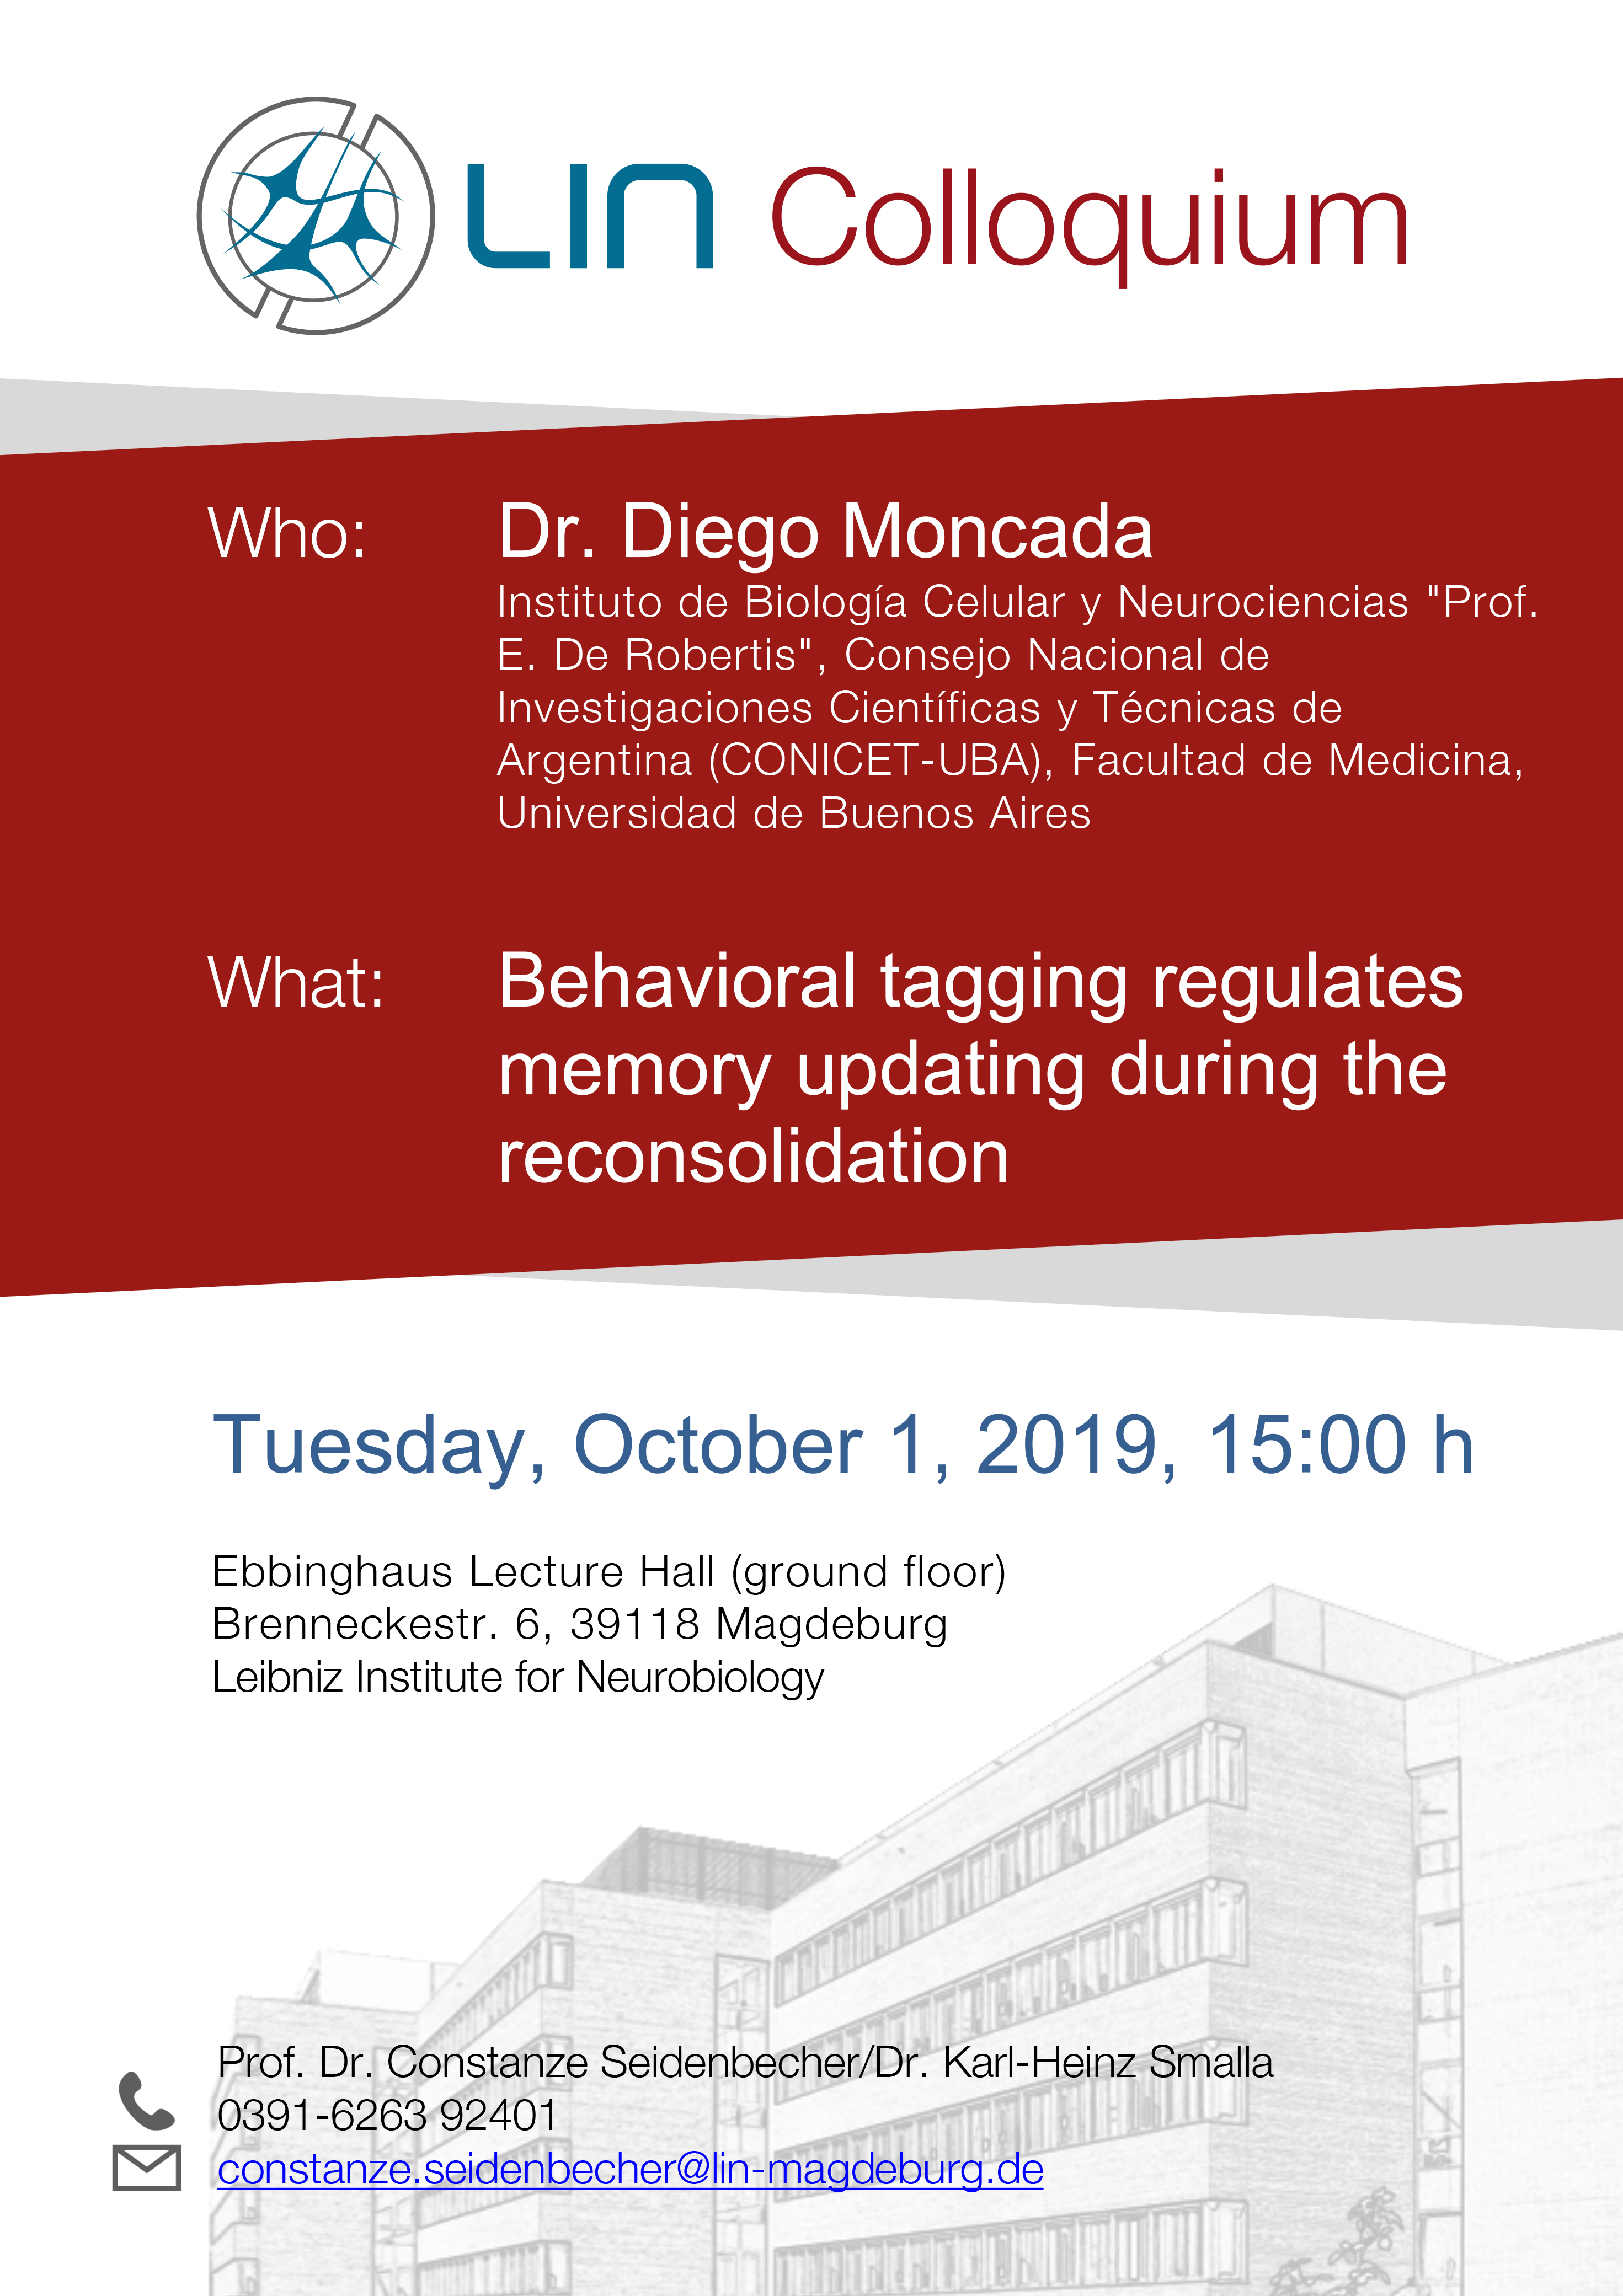 LIN Colloquium: Behavioral tagging regulates memory updating during the reconsolidation @ Ebbinghaus Lecture Hall, Leibniz Institute for Neurobiology